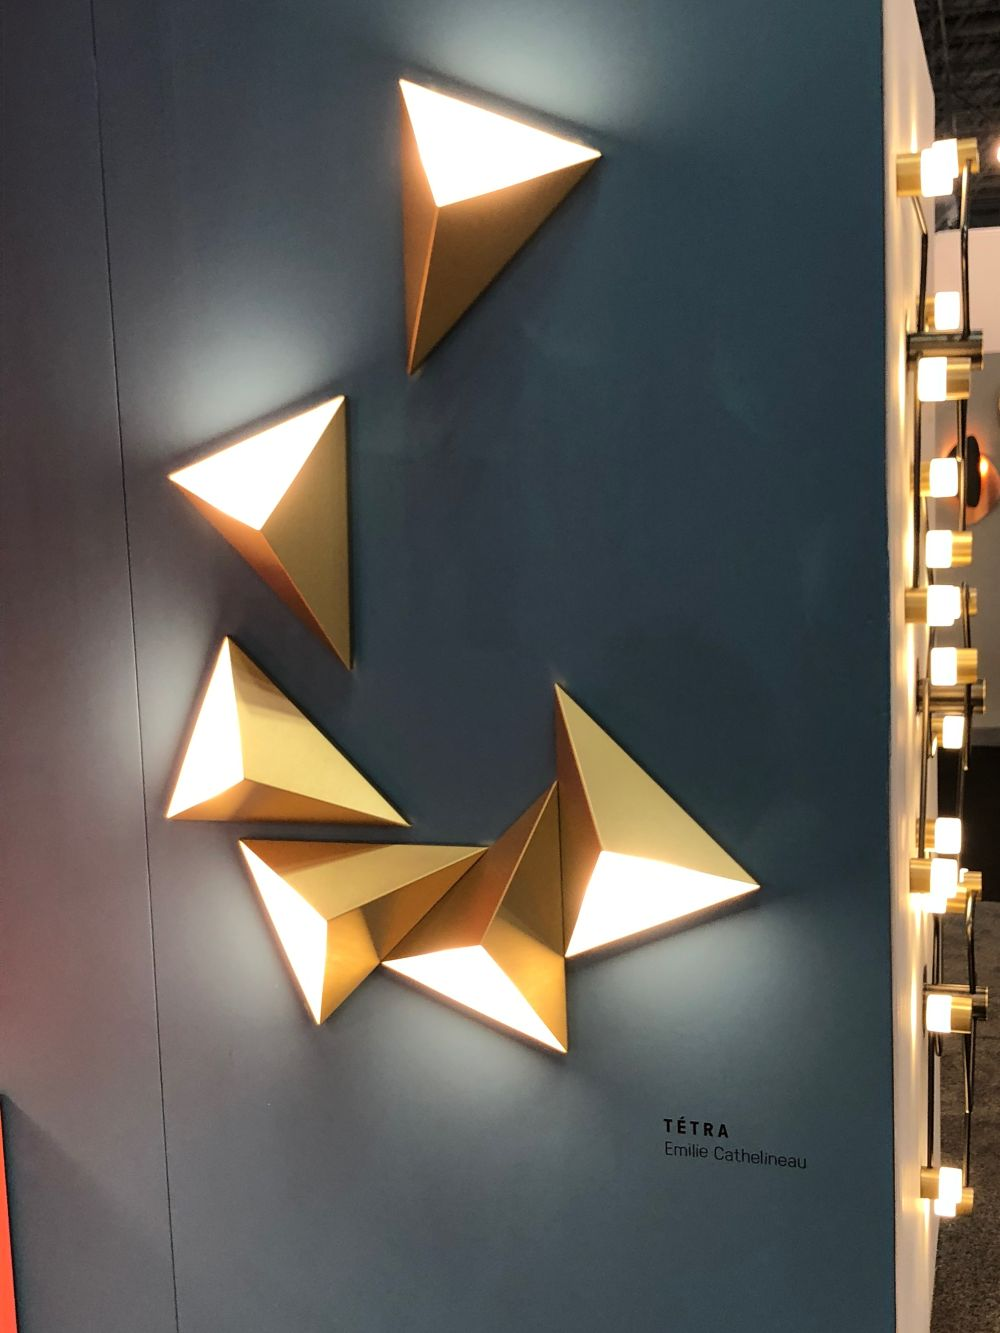 1572980598 662 10 wall lights with exceptional designs and lots of style - 10 Wall Lights With Exceptional Designs And Lots Of Style